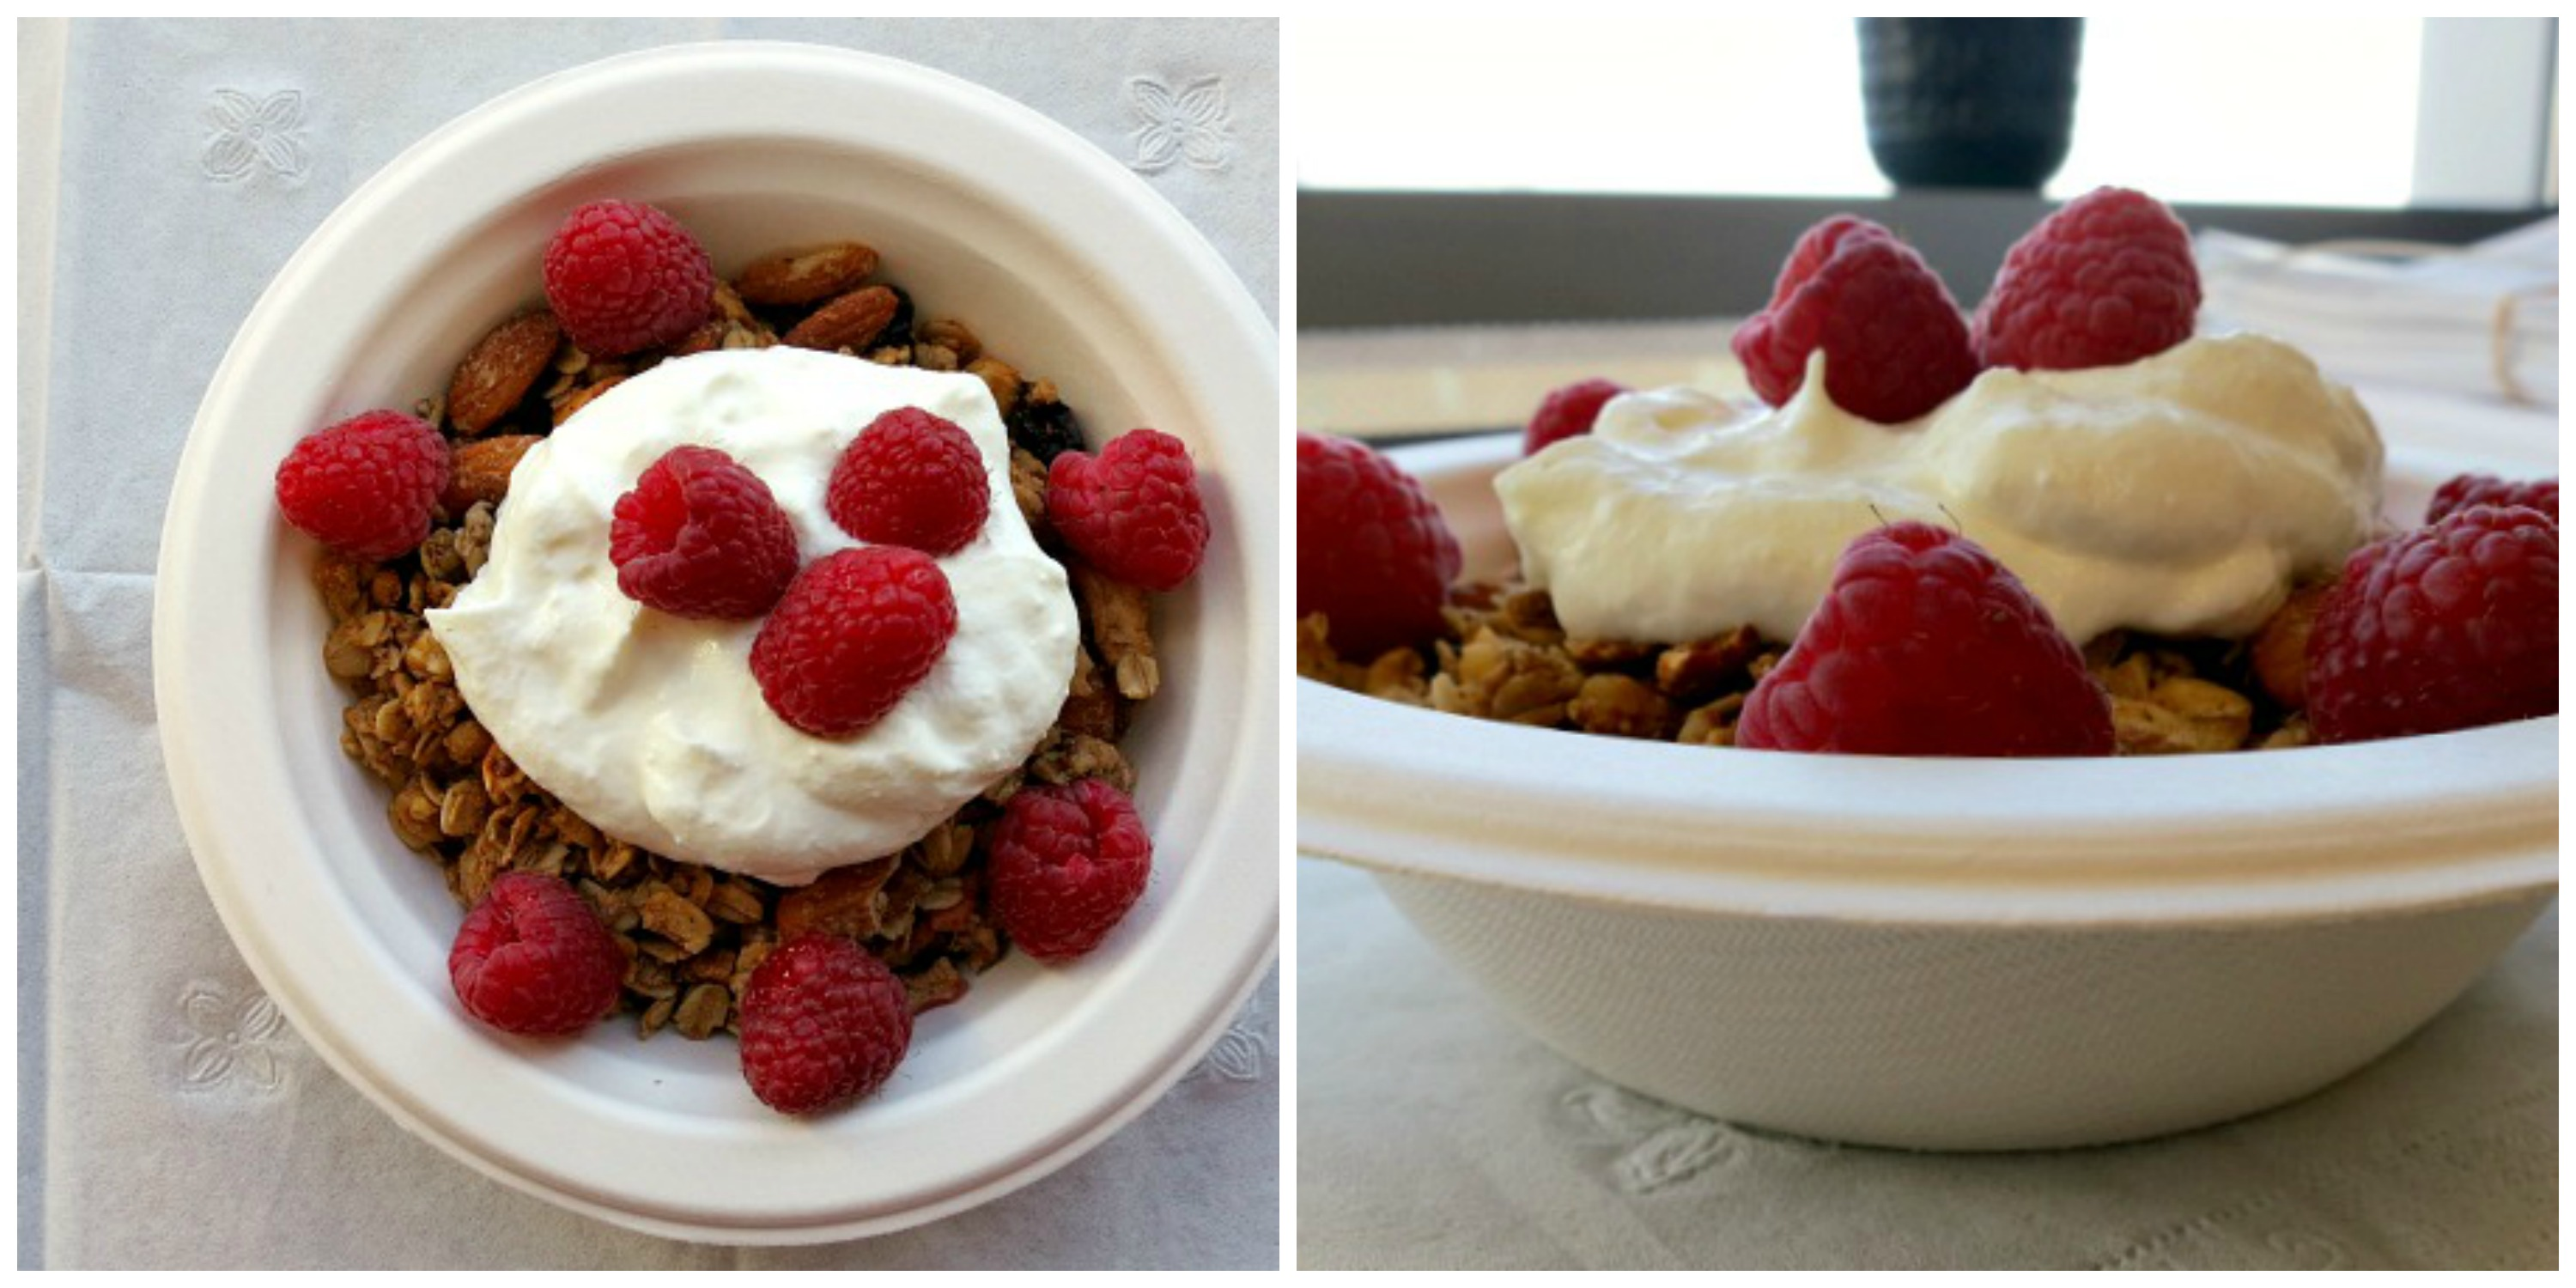 Granola, Yogurt & Berries Collage